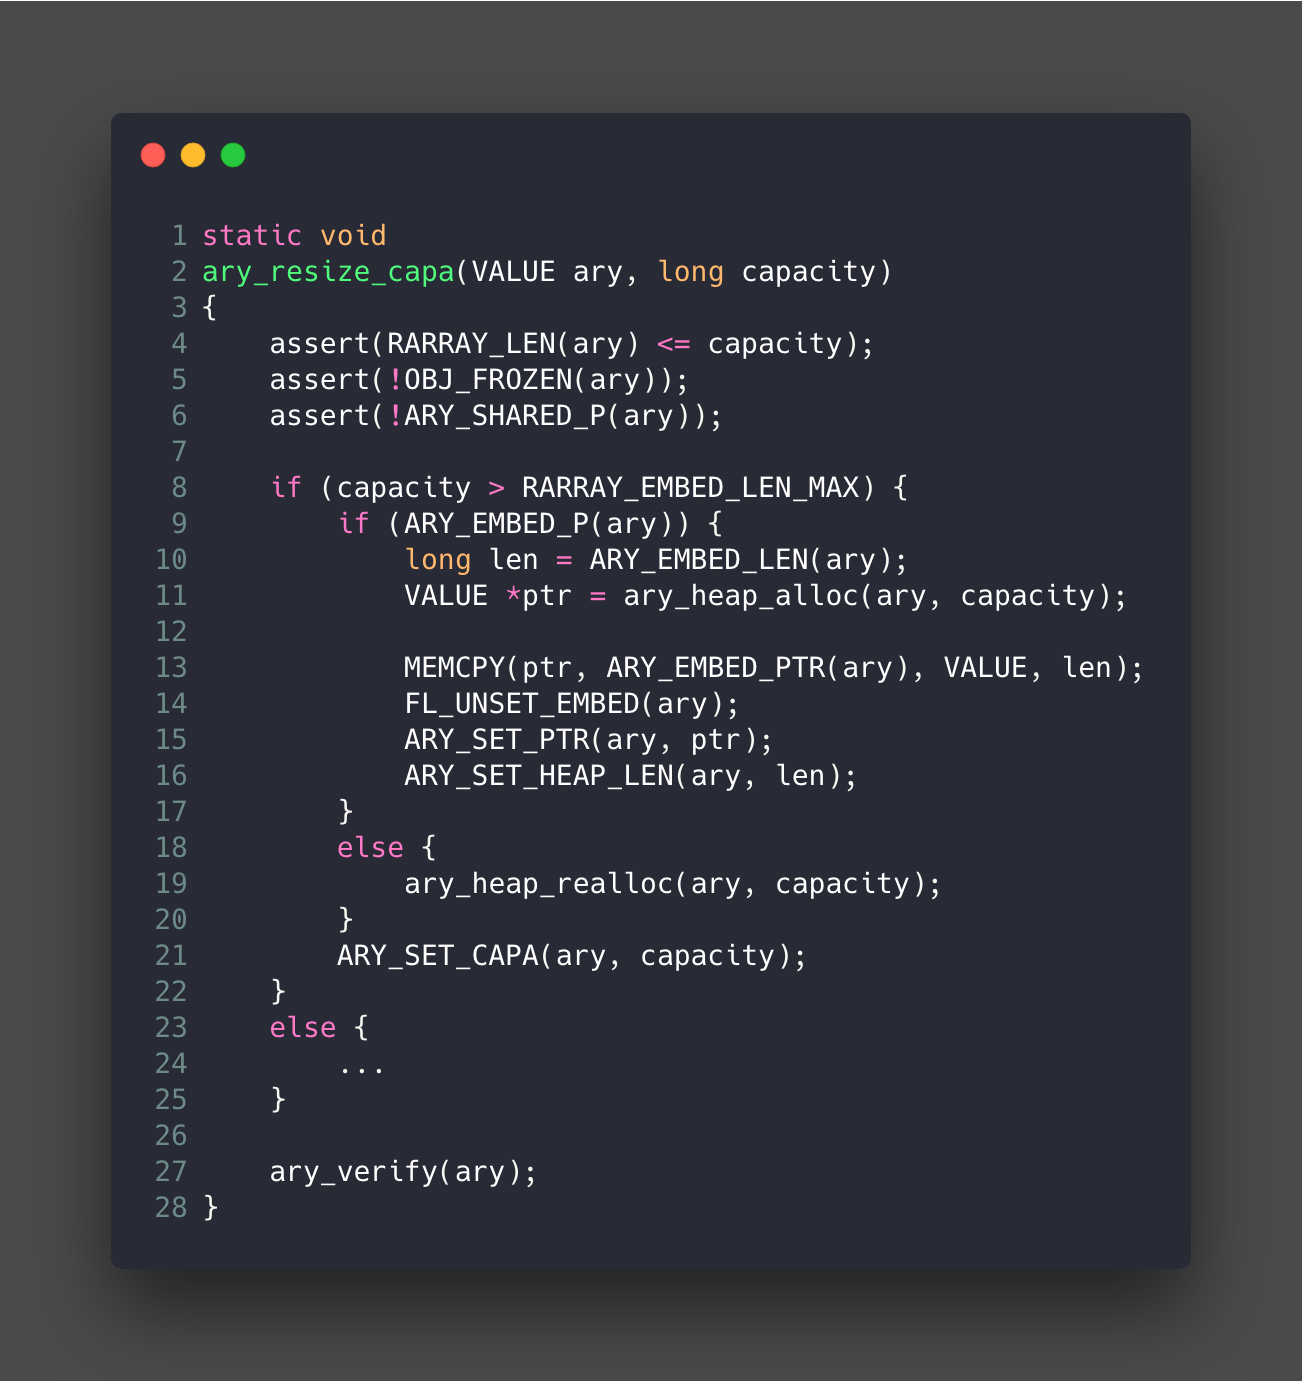 Array resize capa function in Source: https://github.com/ruby/ruby/blob/trunk/array.c